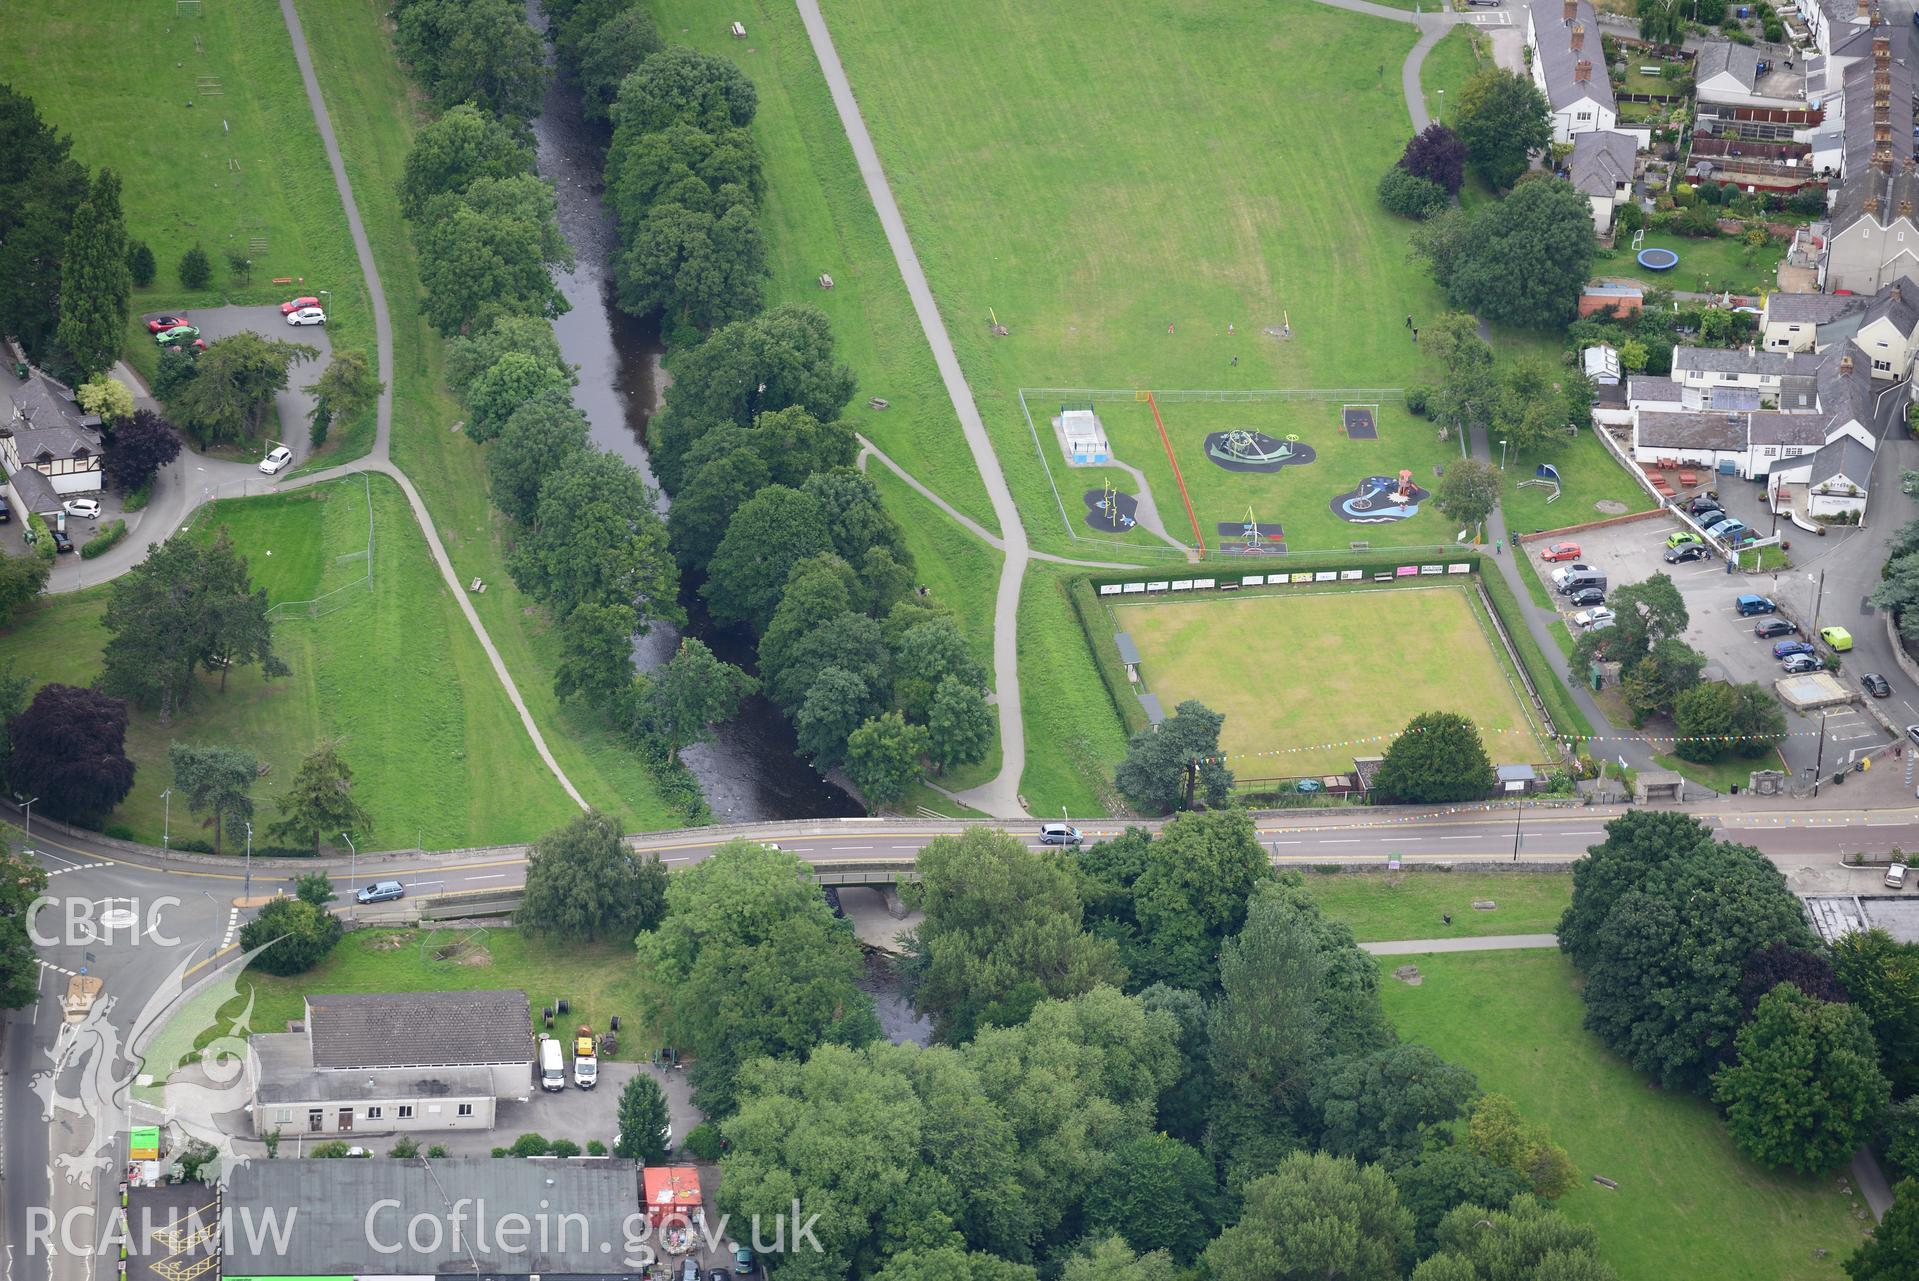 St. Asaph bridge and bowling green. Oblique aerial photograph taken during the Royal Commission's programme of archaeological aerial reconnaissance by Toby Driver on 30th July 2015.